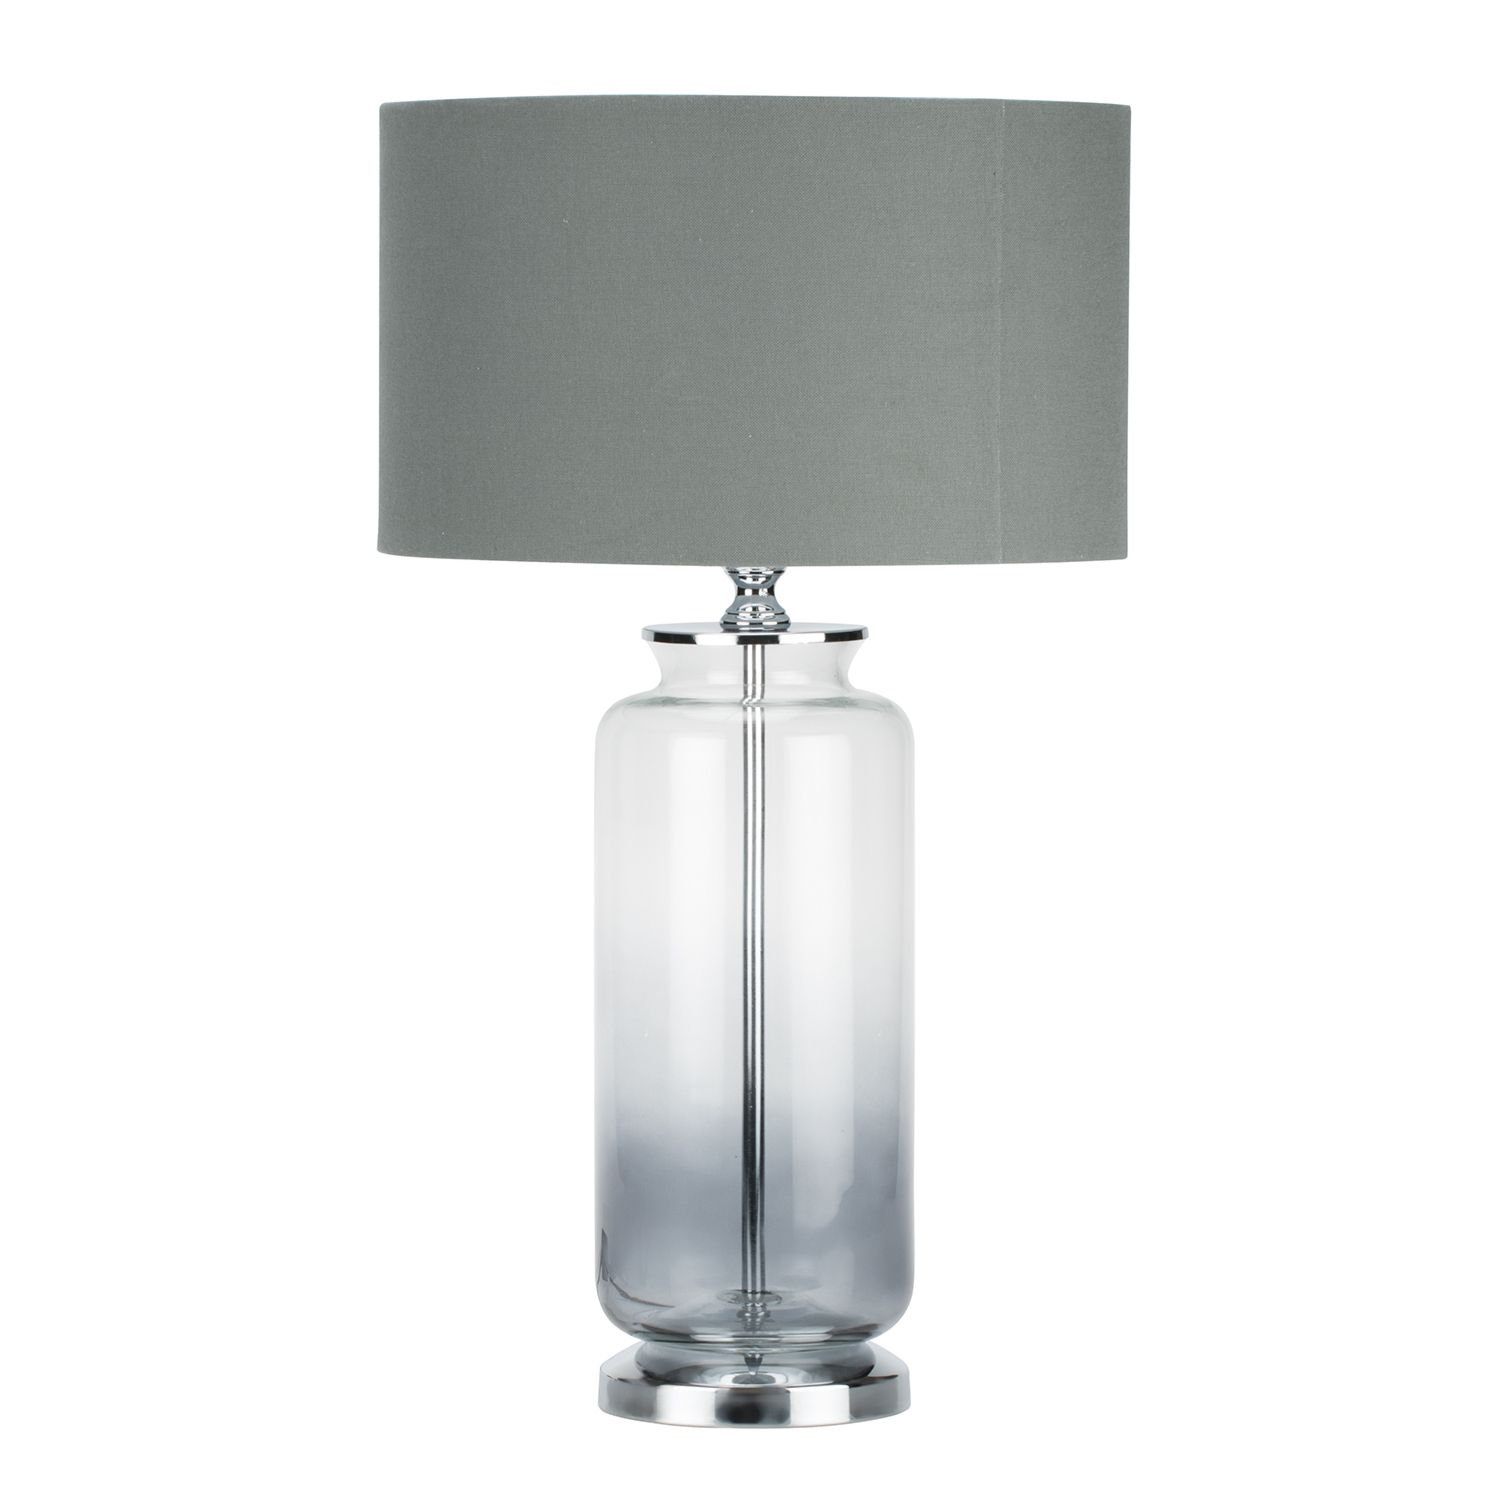 Soho glass lamp one either side of bed for sophisticated look